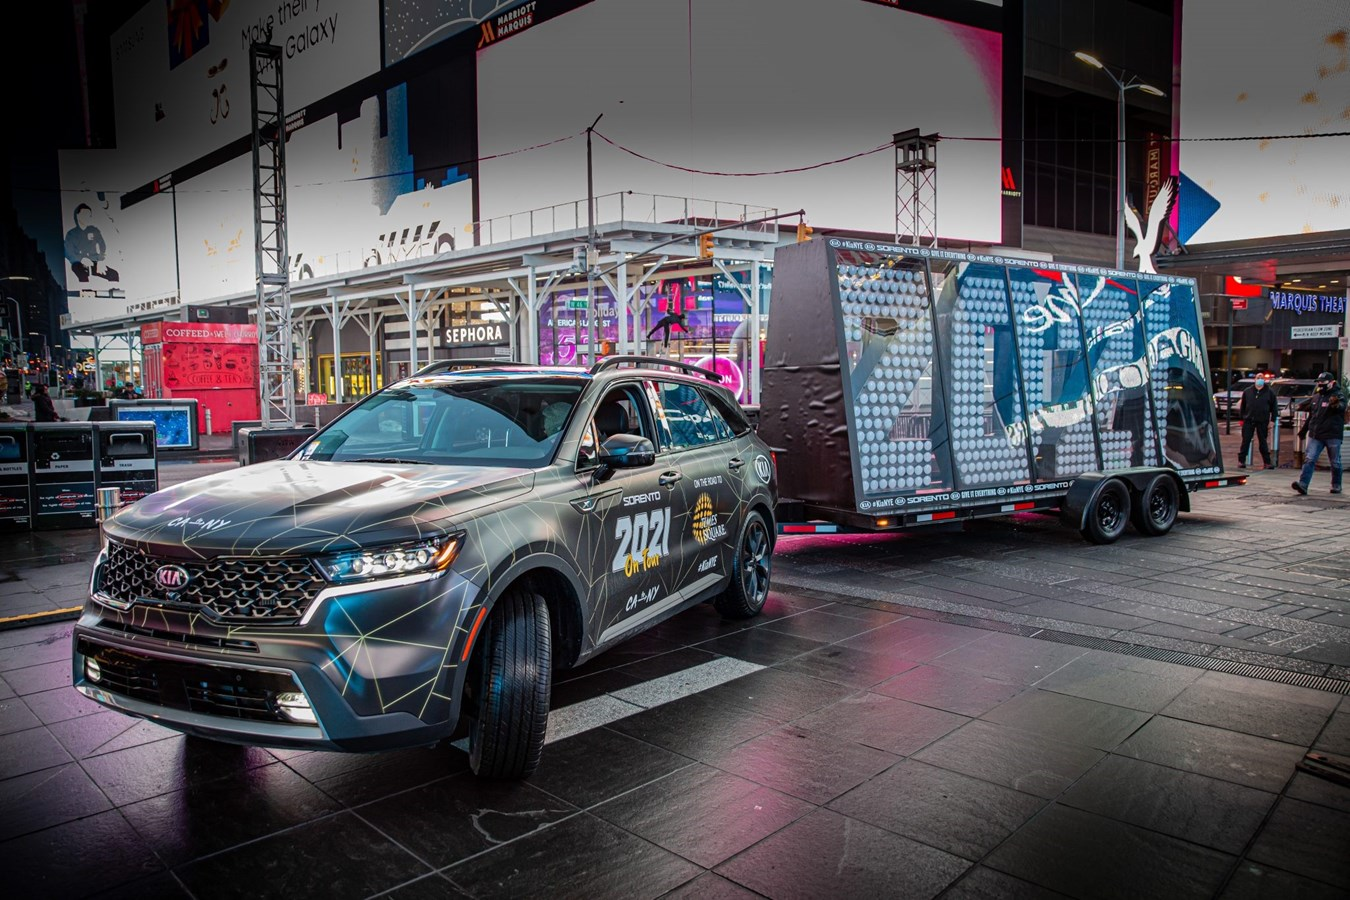 KIA SORENTO DELIVERS 2021 NEW YEAR'S NUMERALS TO TIMES SQUARE